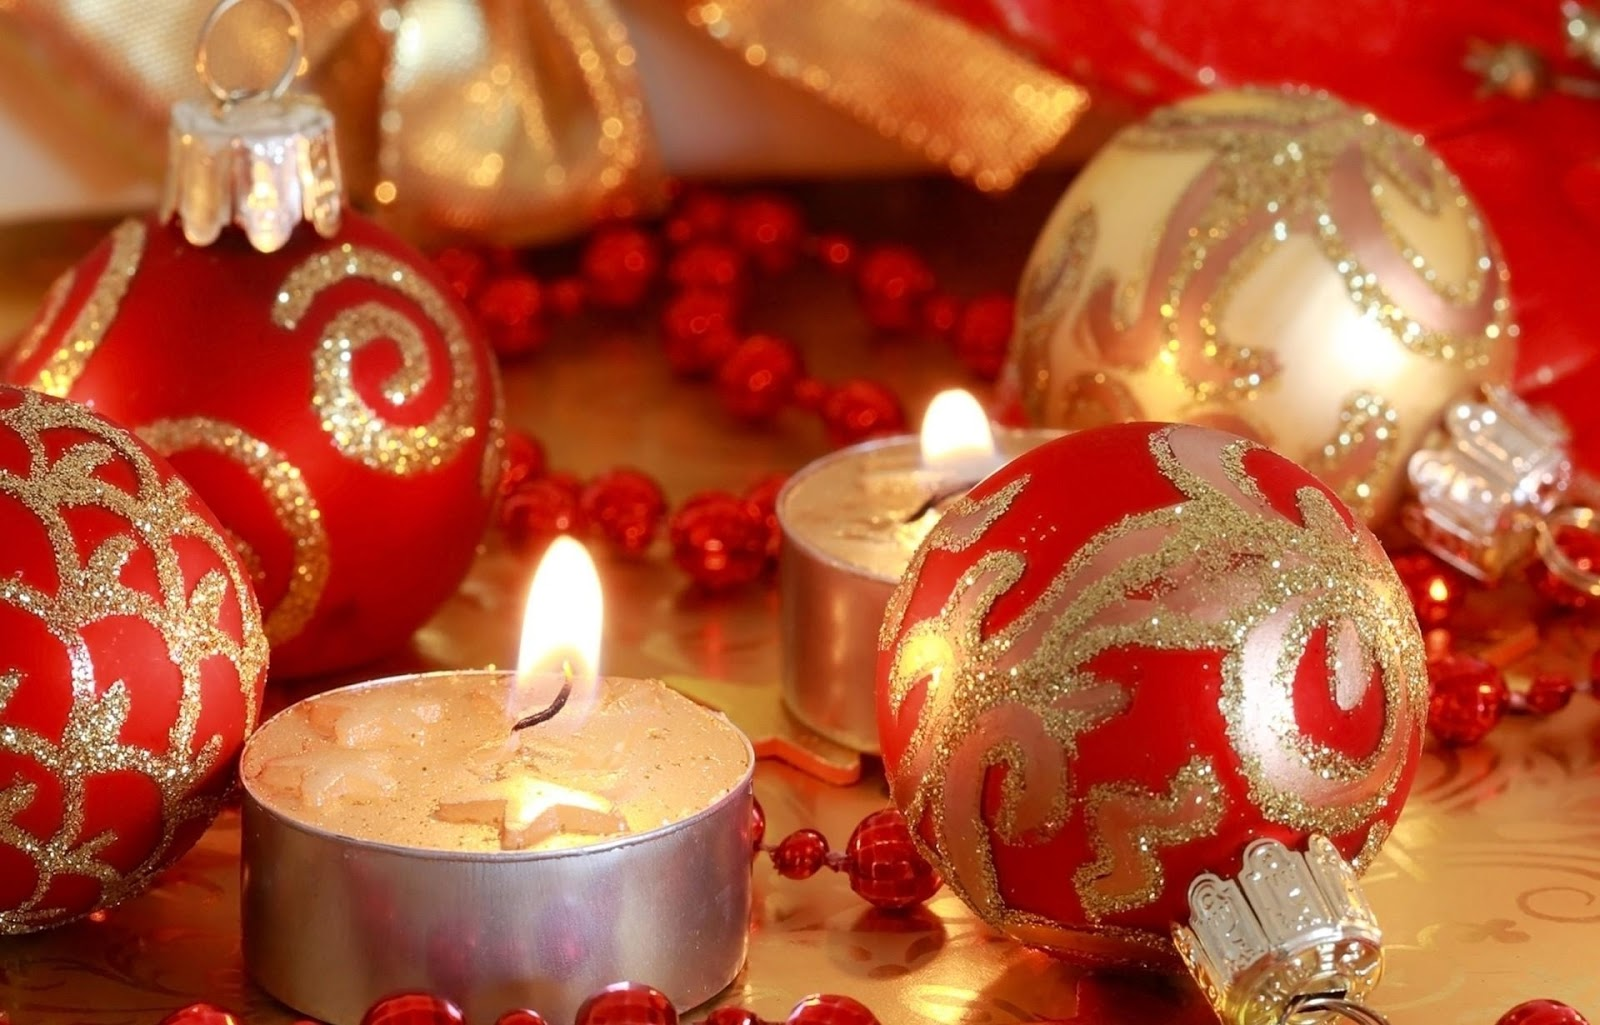 Christmas 2014 Wallpaper hd photo